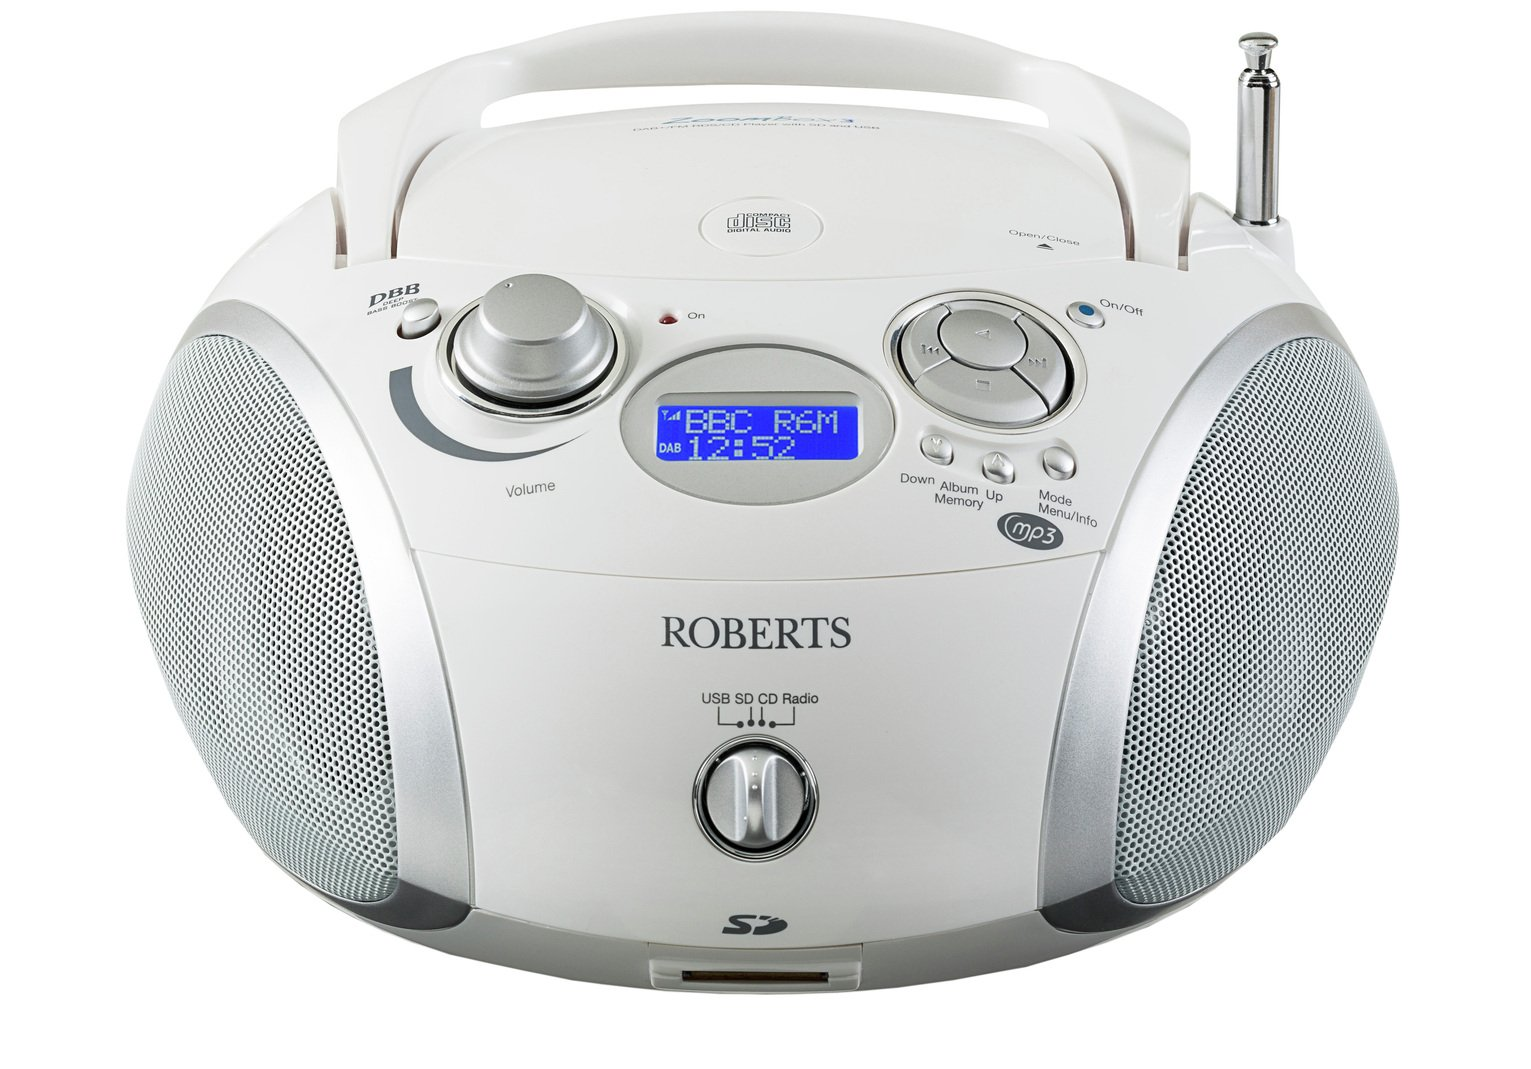 Roberts ZoomBox 3 Boombox - White from Roberts